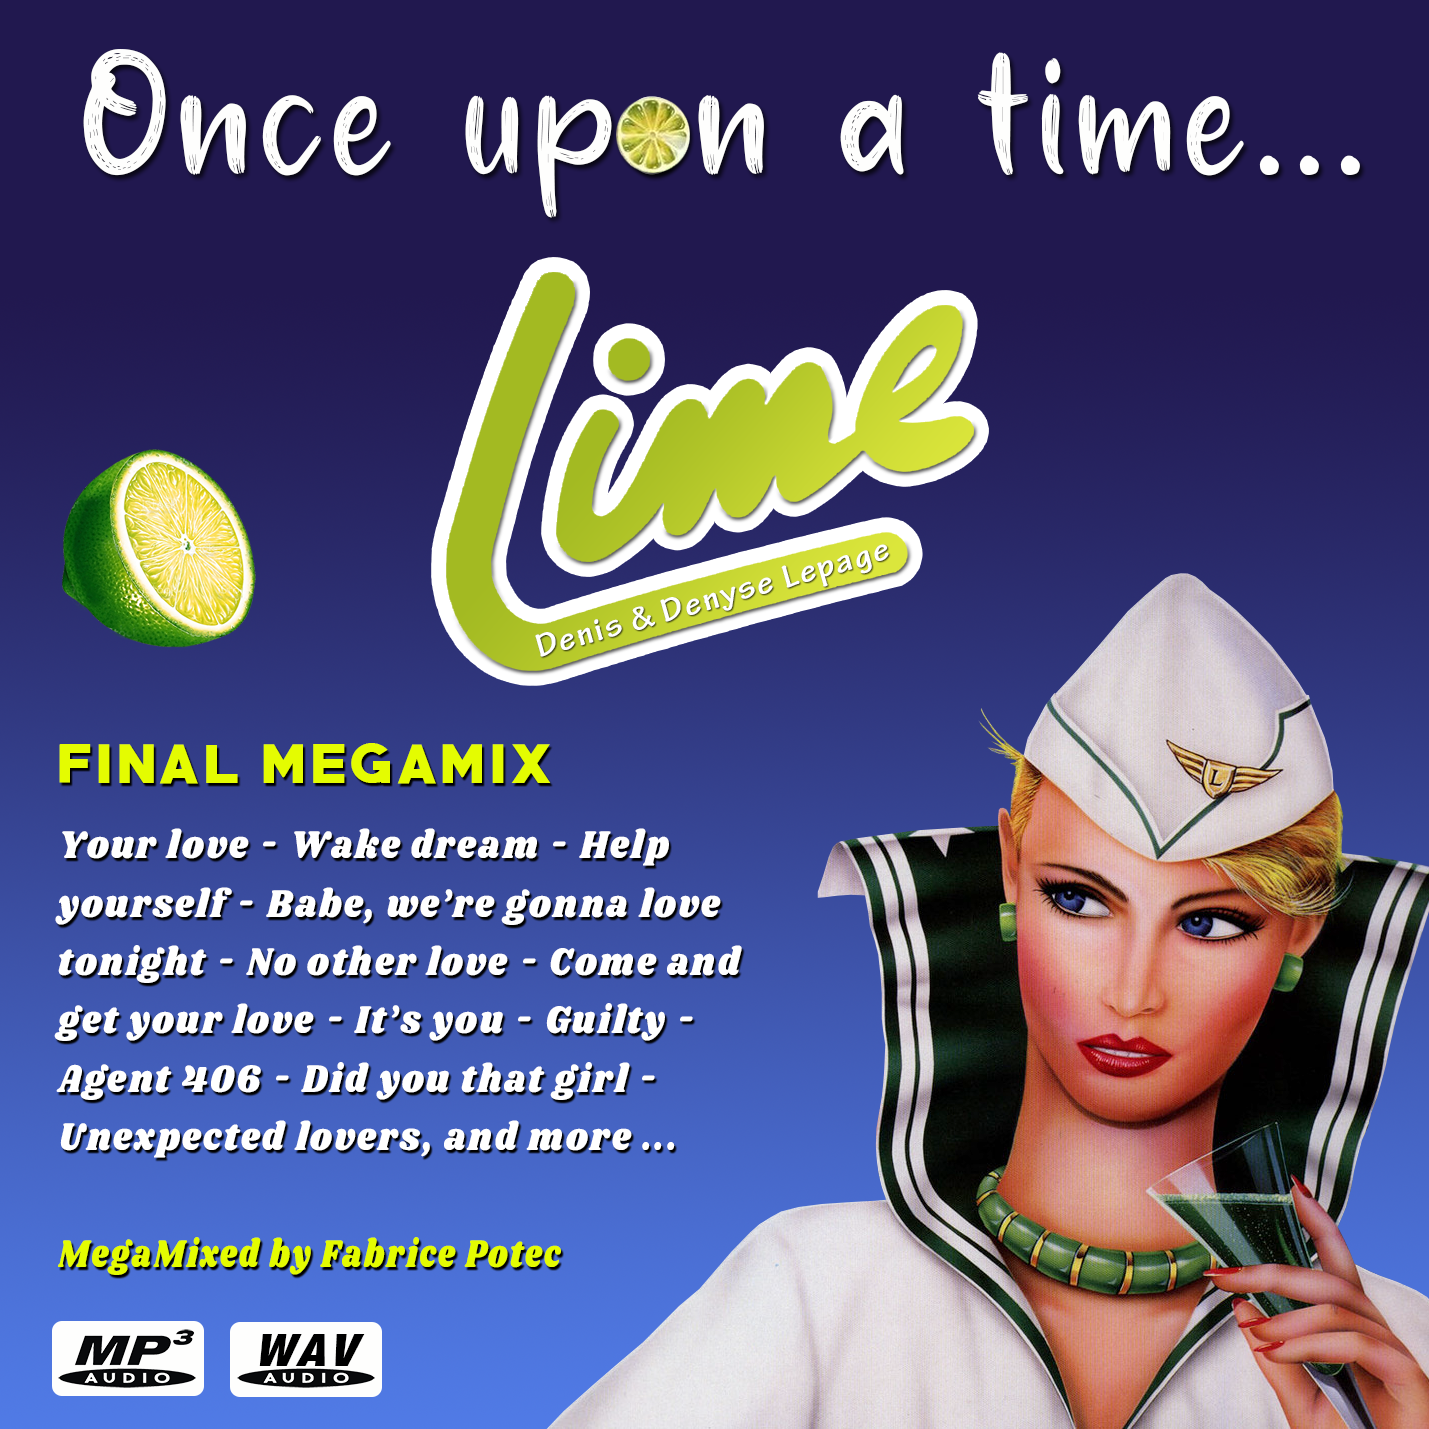 Once upon a time LIME … Final Megamix - MegaMixed by Fabrice Potec